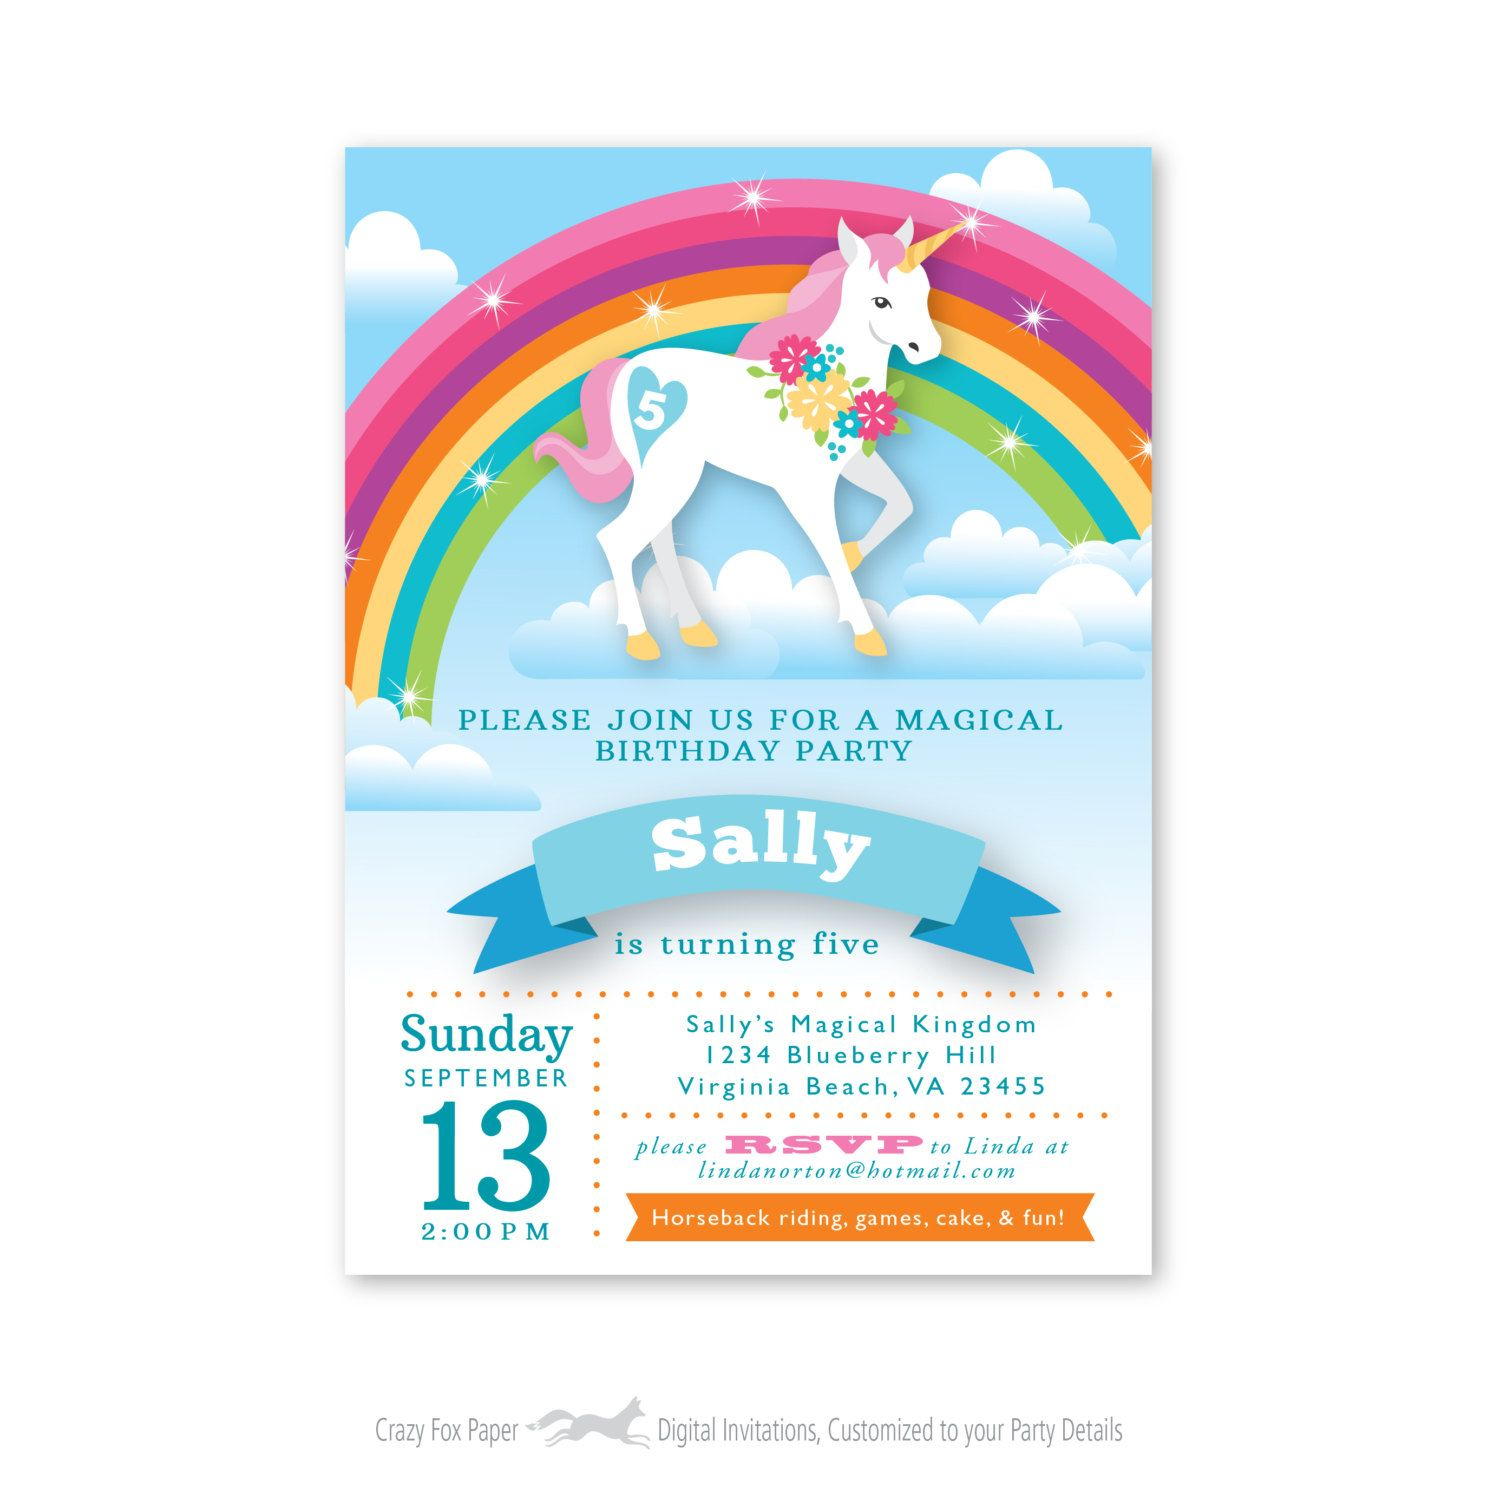 Rainbow Unicorn Birthday Invitation, Printable, Customized Throughout Printable A Day Bday Schedule Virginia Beach